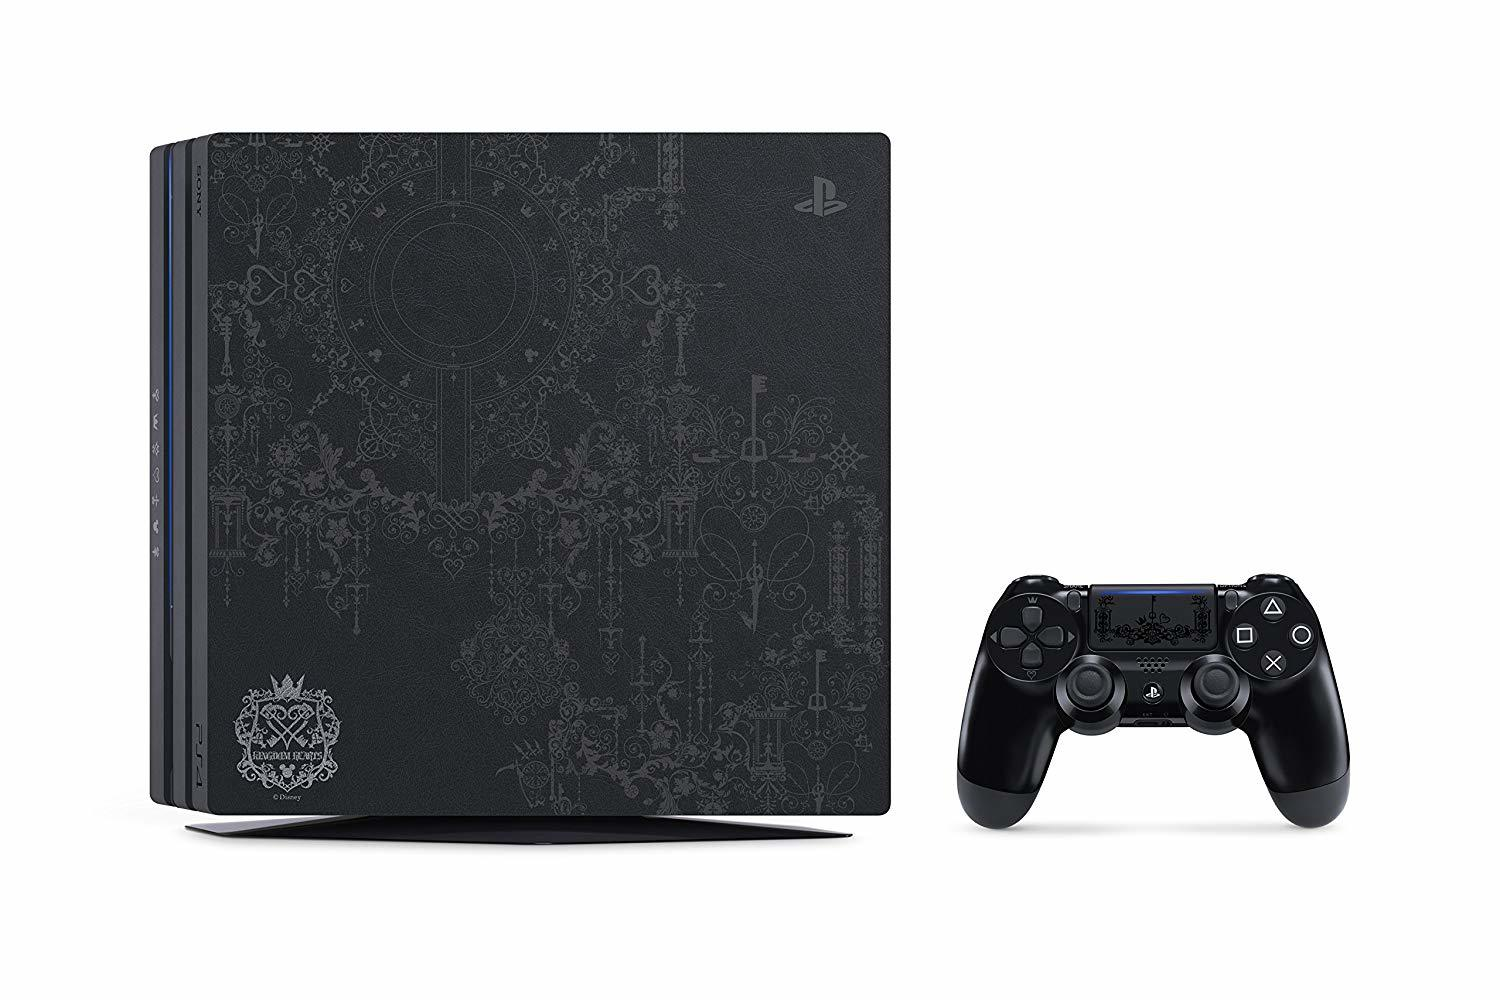 KINGDOM HEARTS III LIMITED EDITION PlayStation4 Pro